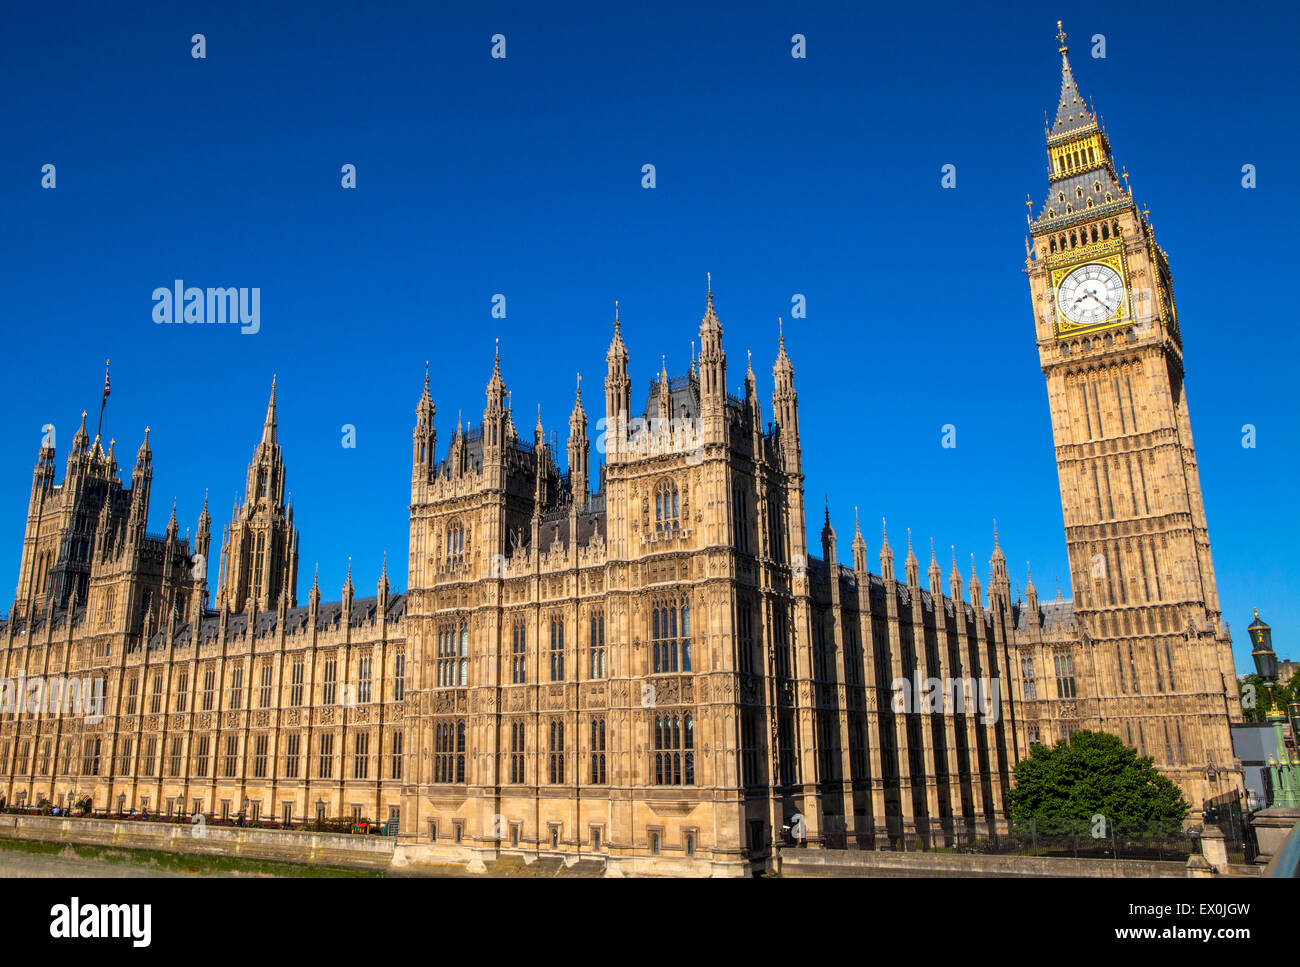 A view of the magnigicent architecture of the Palace of Westminster in London. - Stock Image